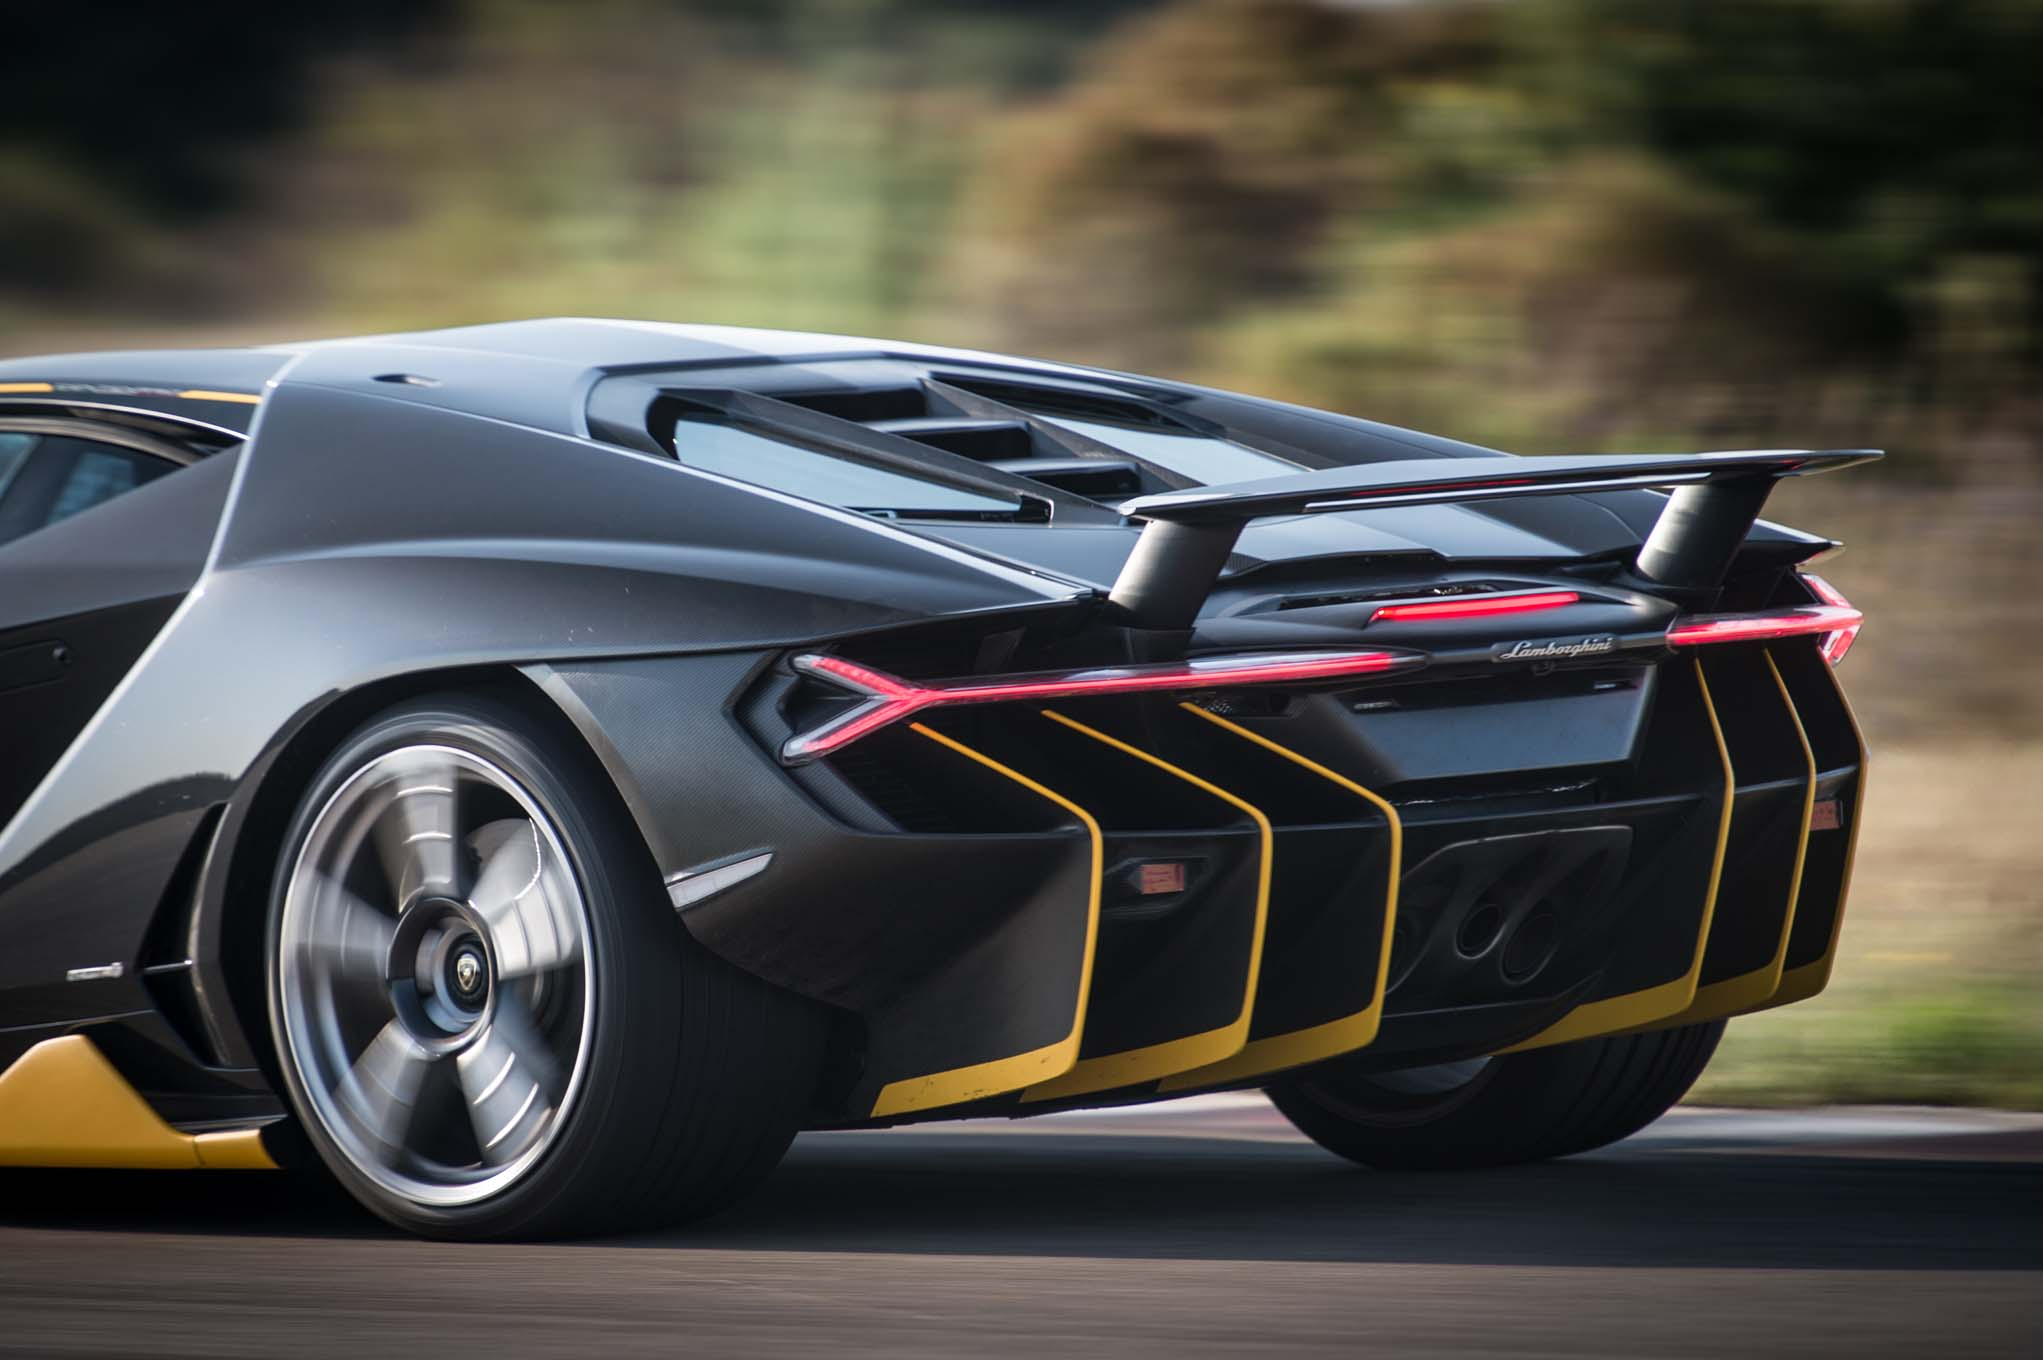 Lamborghini Centenario Roadster It Most Insane And